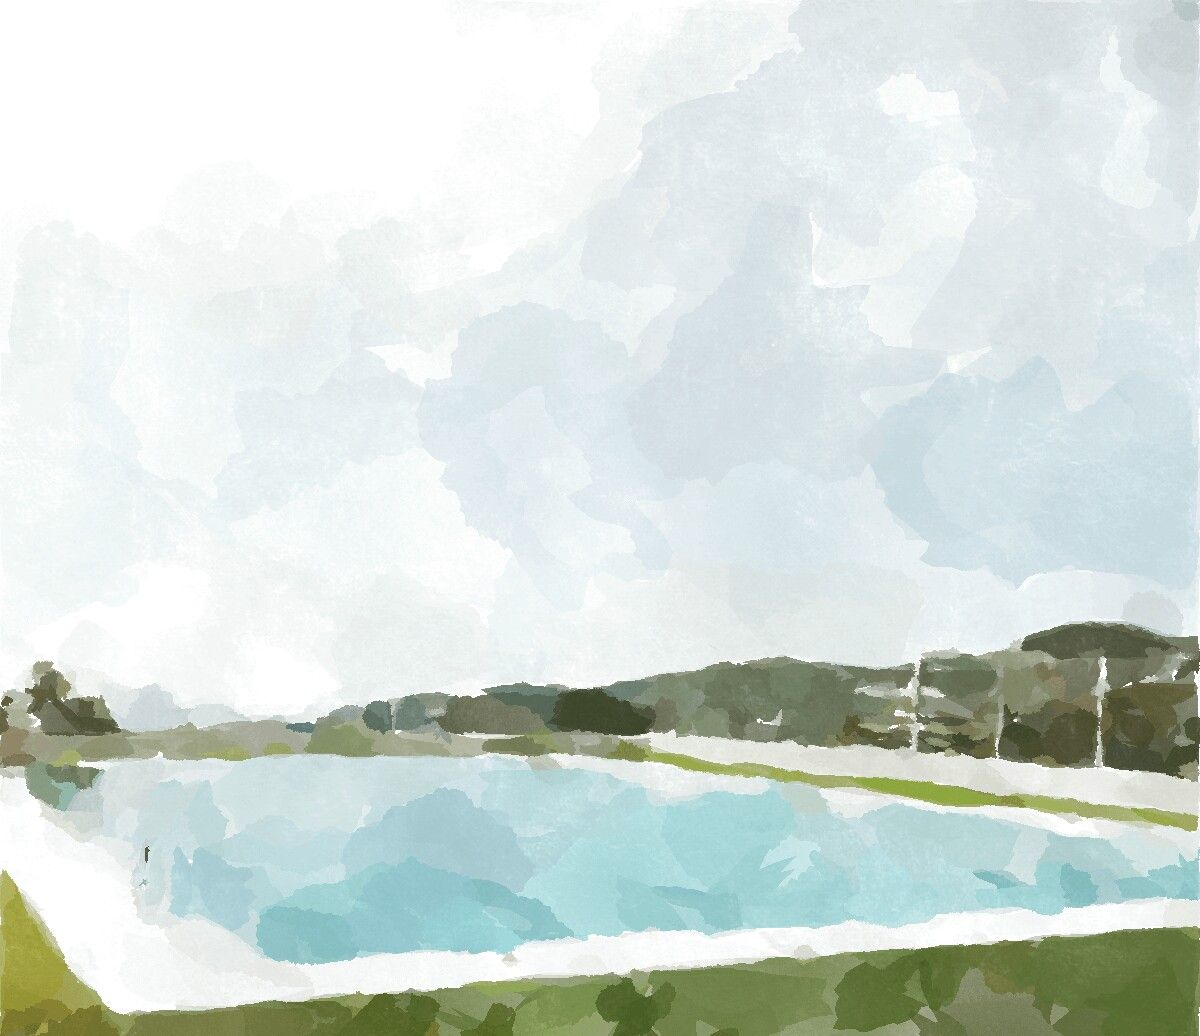 Copyright Free Watercolor Art Sky And Pool With Water